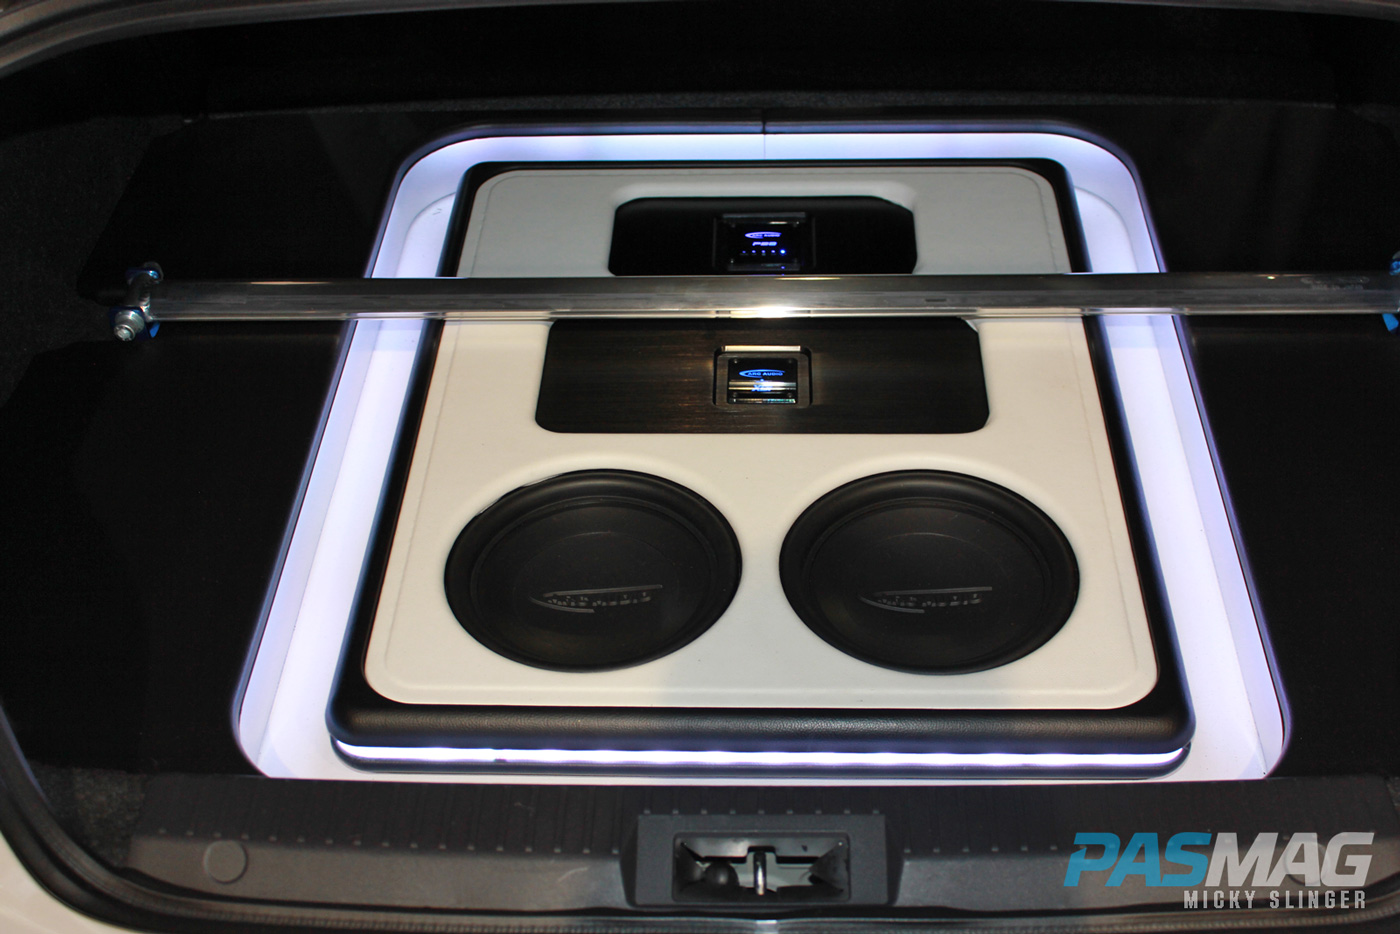 PASMAG CES 2015 Las Vegas NV BunnyHunter Scion FRS ARC Audio trunk